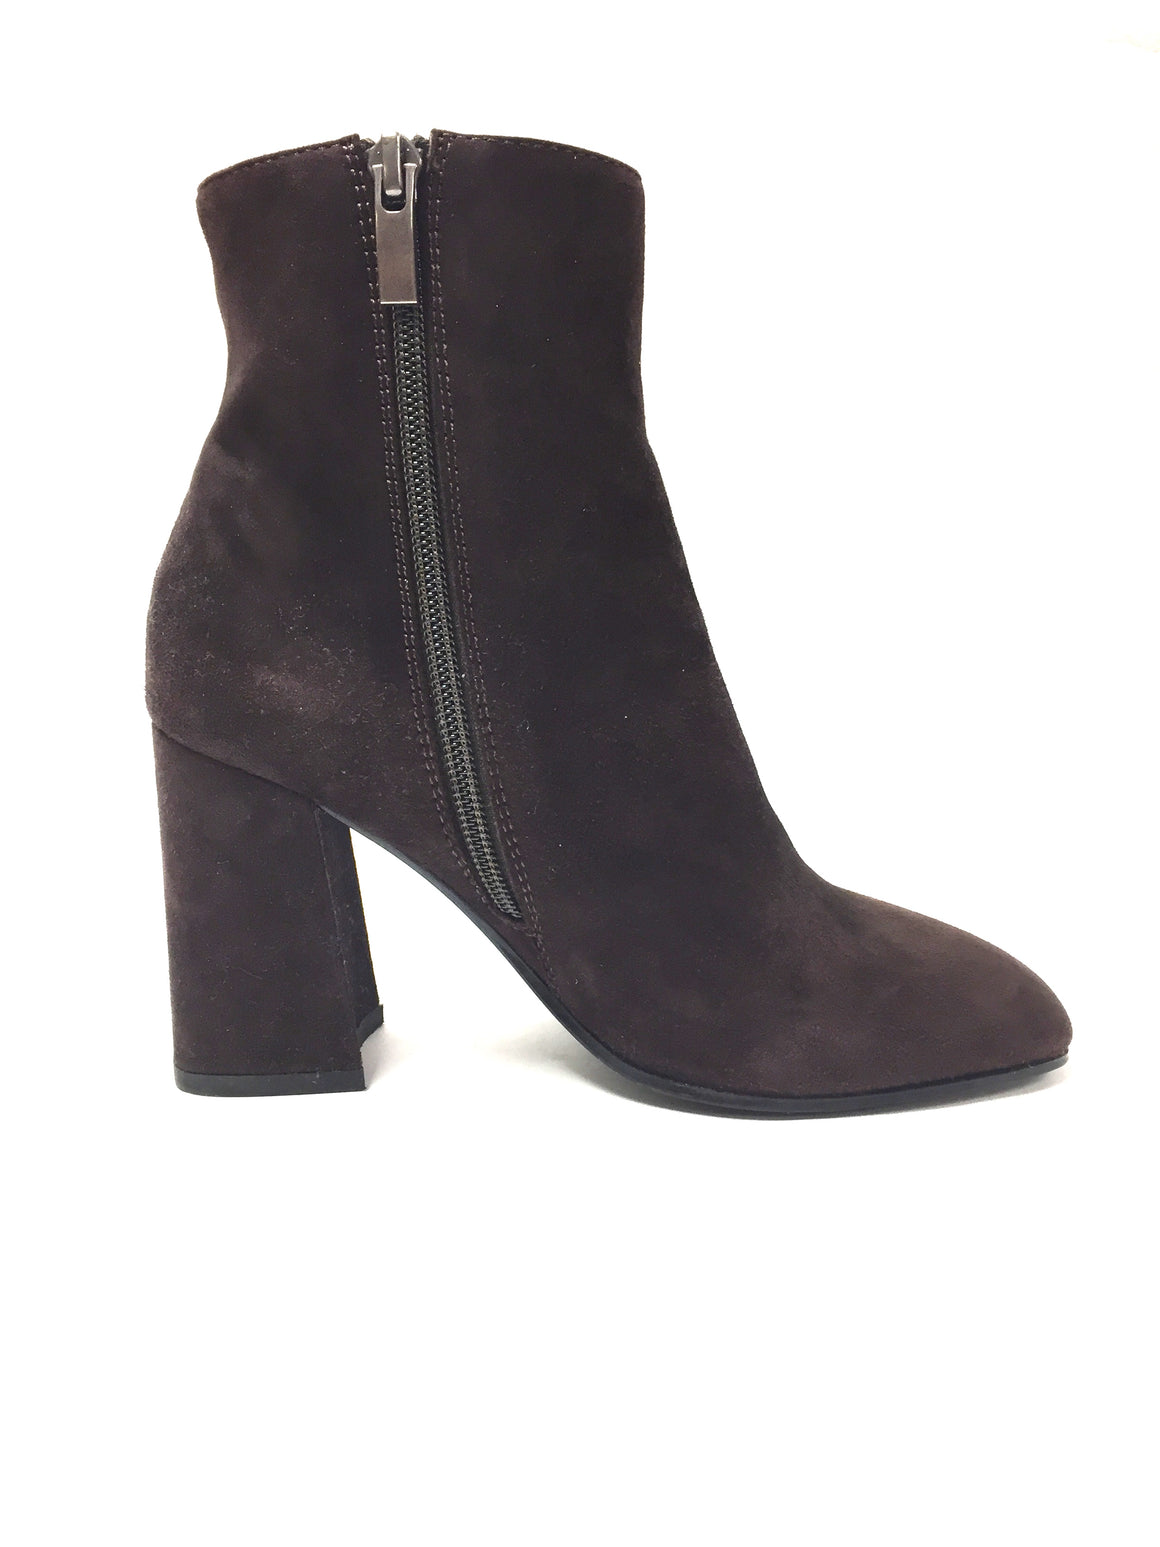 BRUNO PREMI Brown Suede Block-Heel Ankle Boots Booties Size: EU 36 / US 6